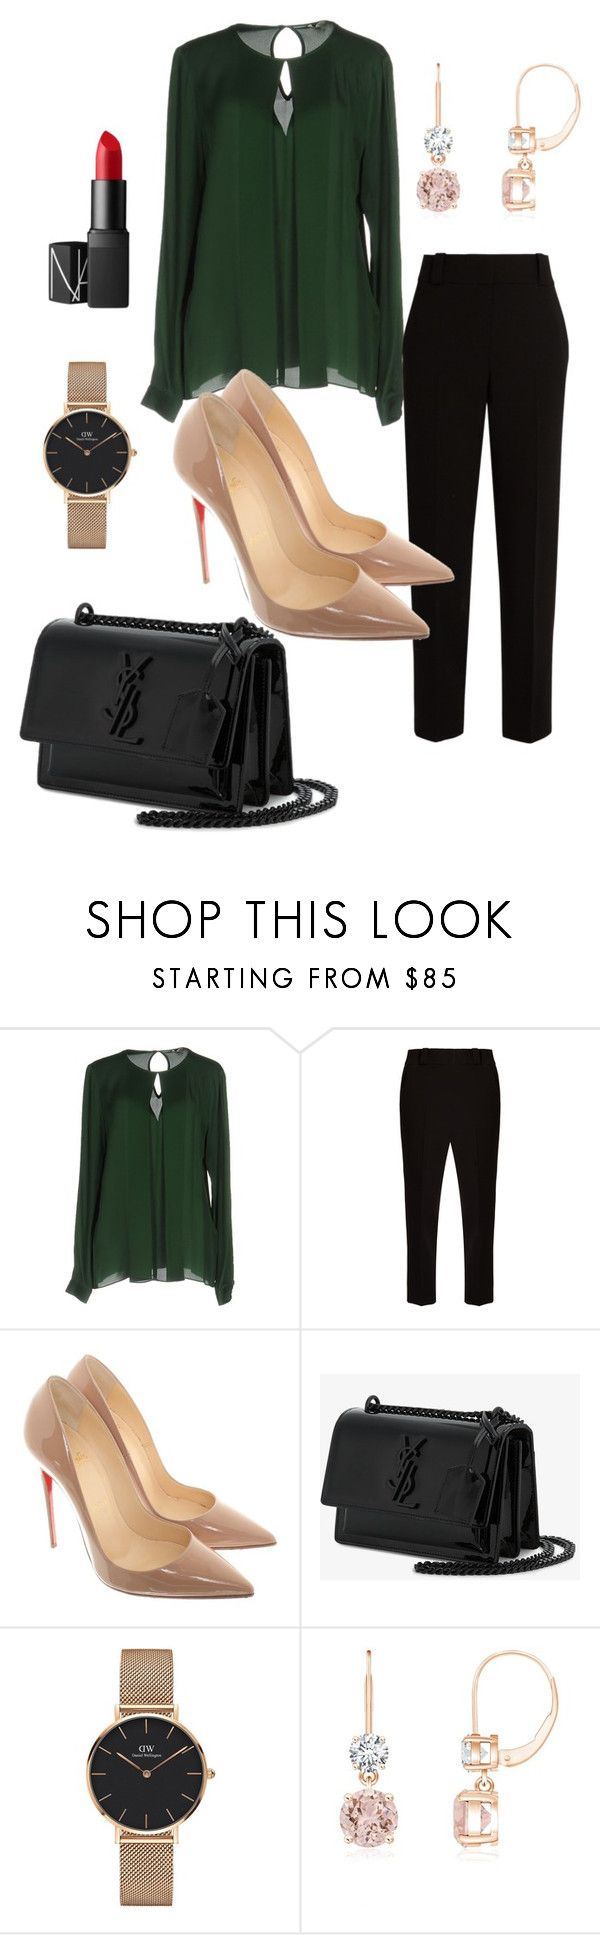 """""""Untitled #788"""" by stylemirror ❤ liked on Polyvore featuring MICHAEL Michael Kors, The Row, Christian Louboutin, Yves Saint Laurent, Daniel Wellington and NARS Cosmetics"""